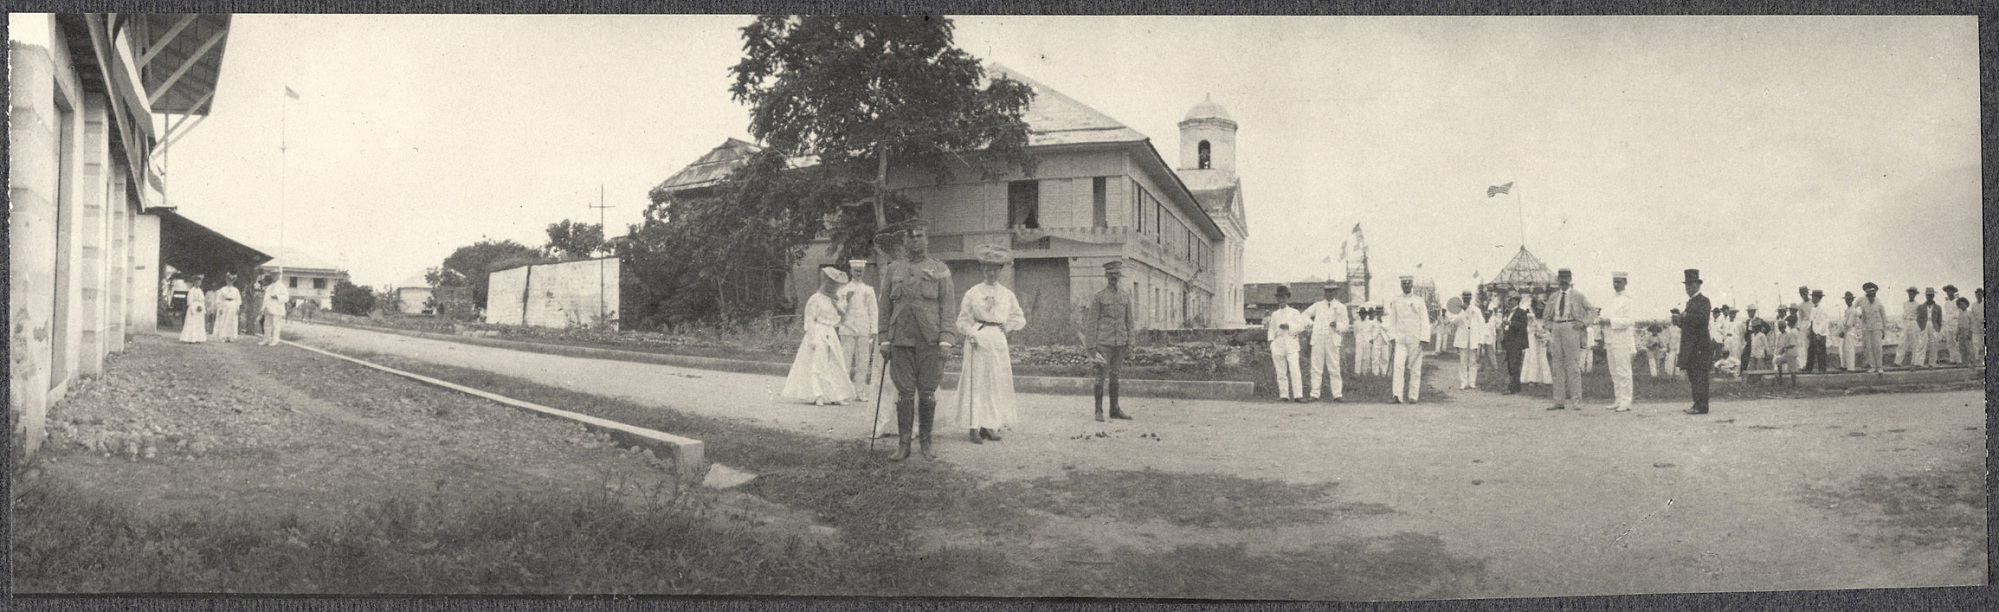 Americans on a town street, possibly Legazpi